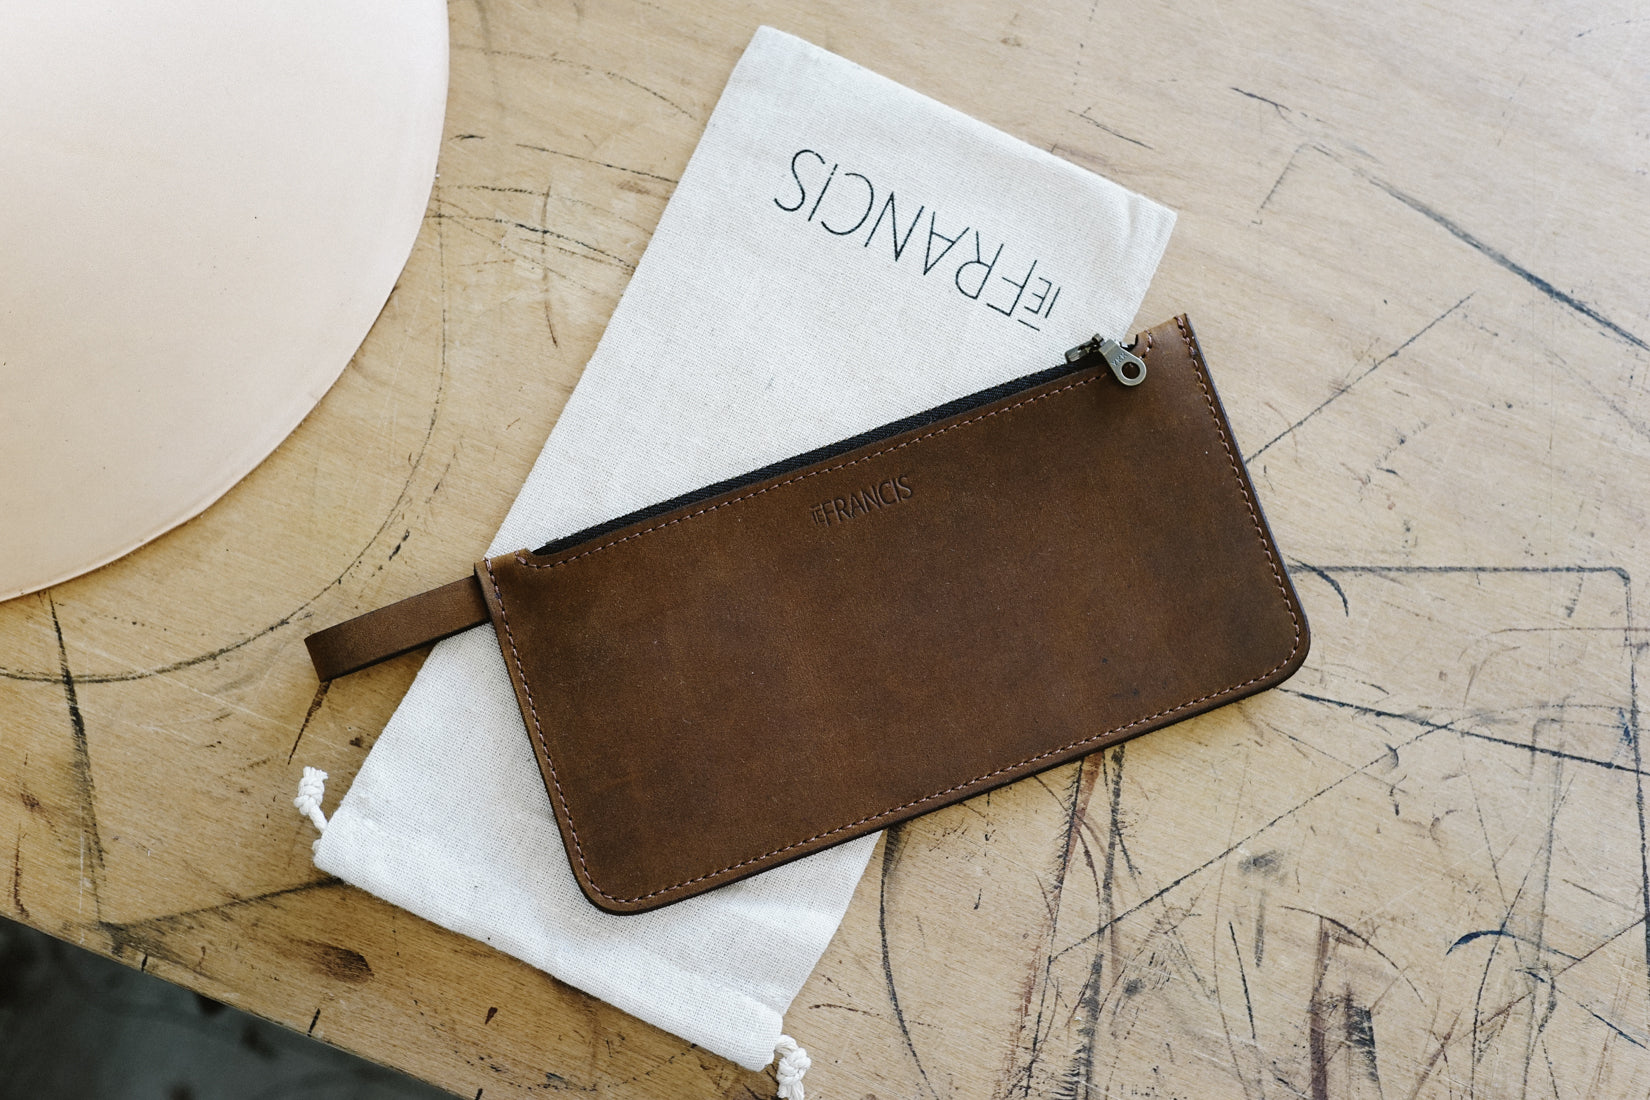 IEFrancis leather goods and accessories handmade in Victoria, Australia